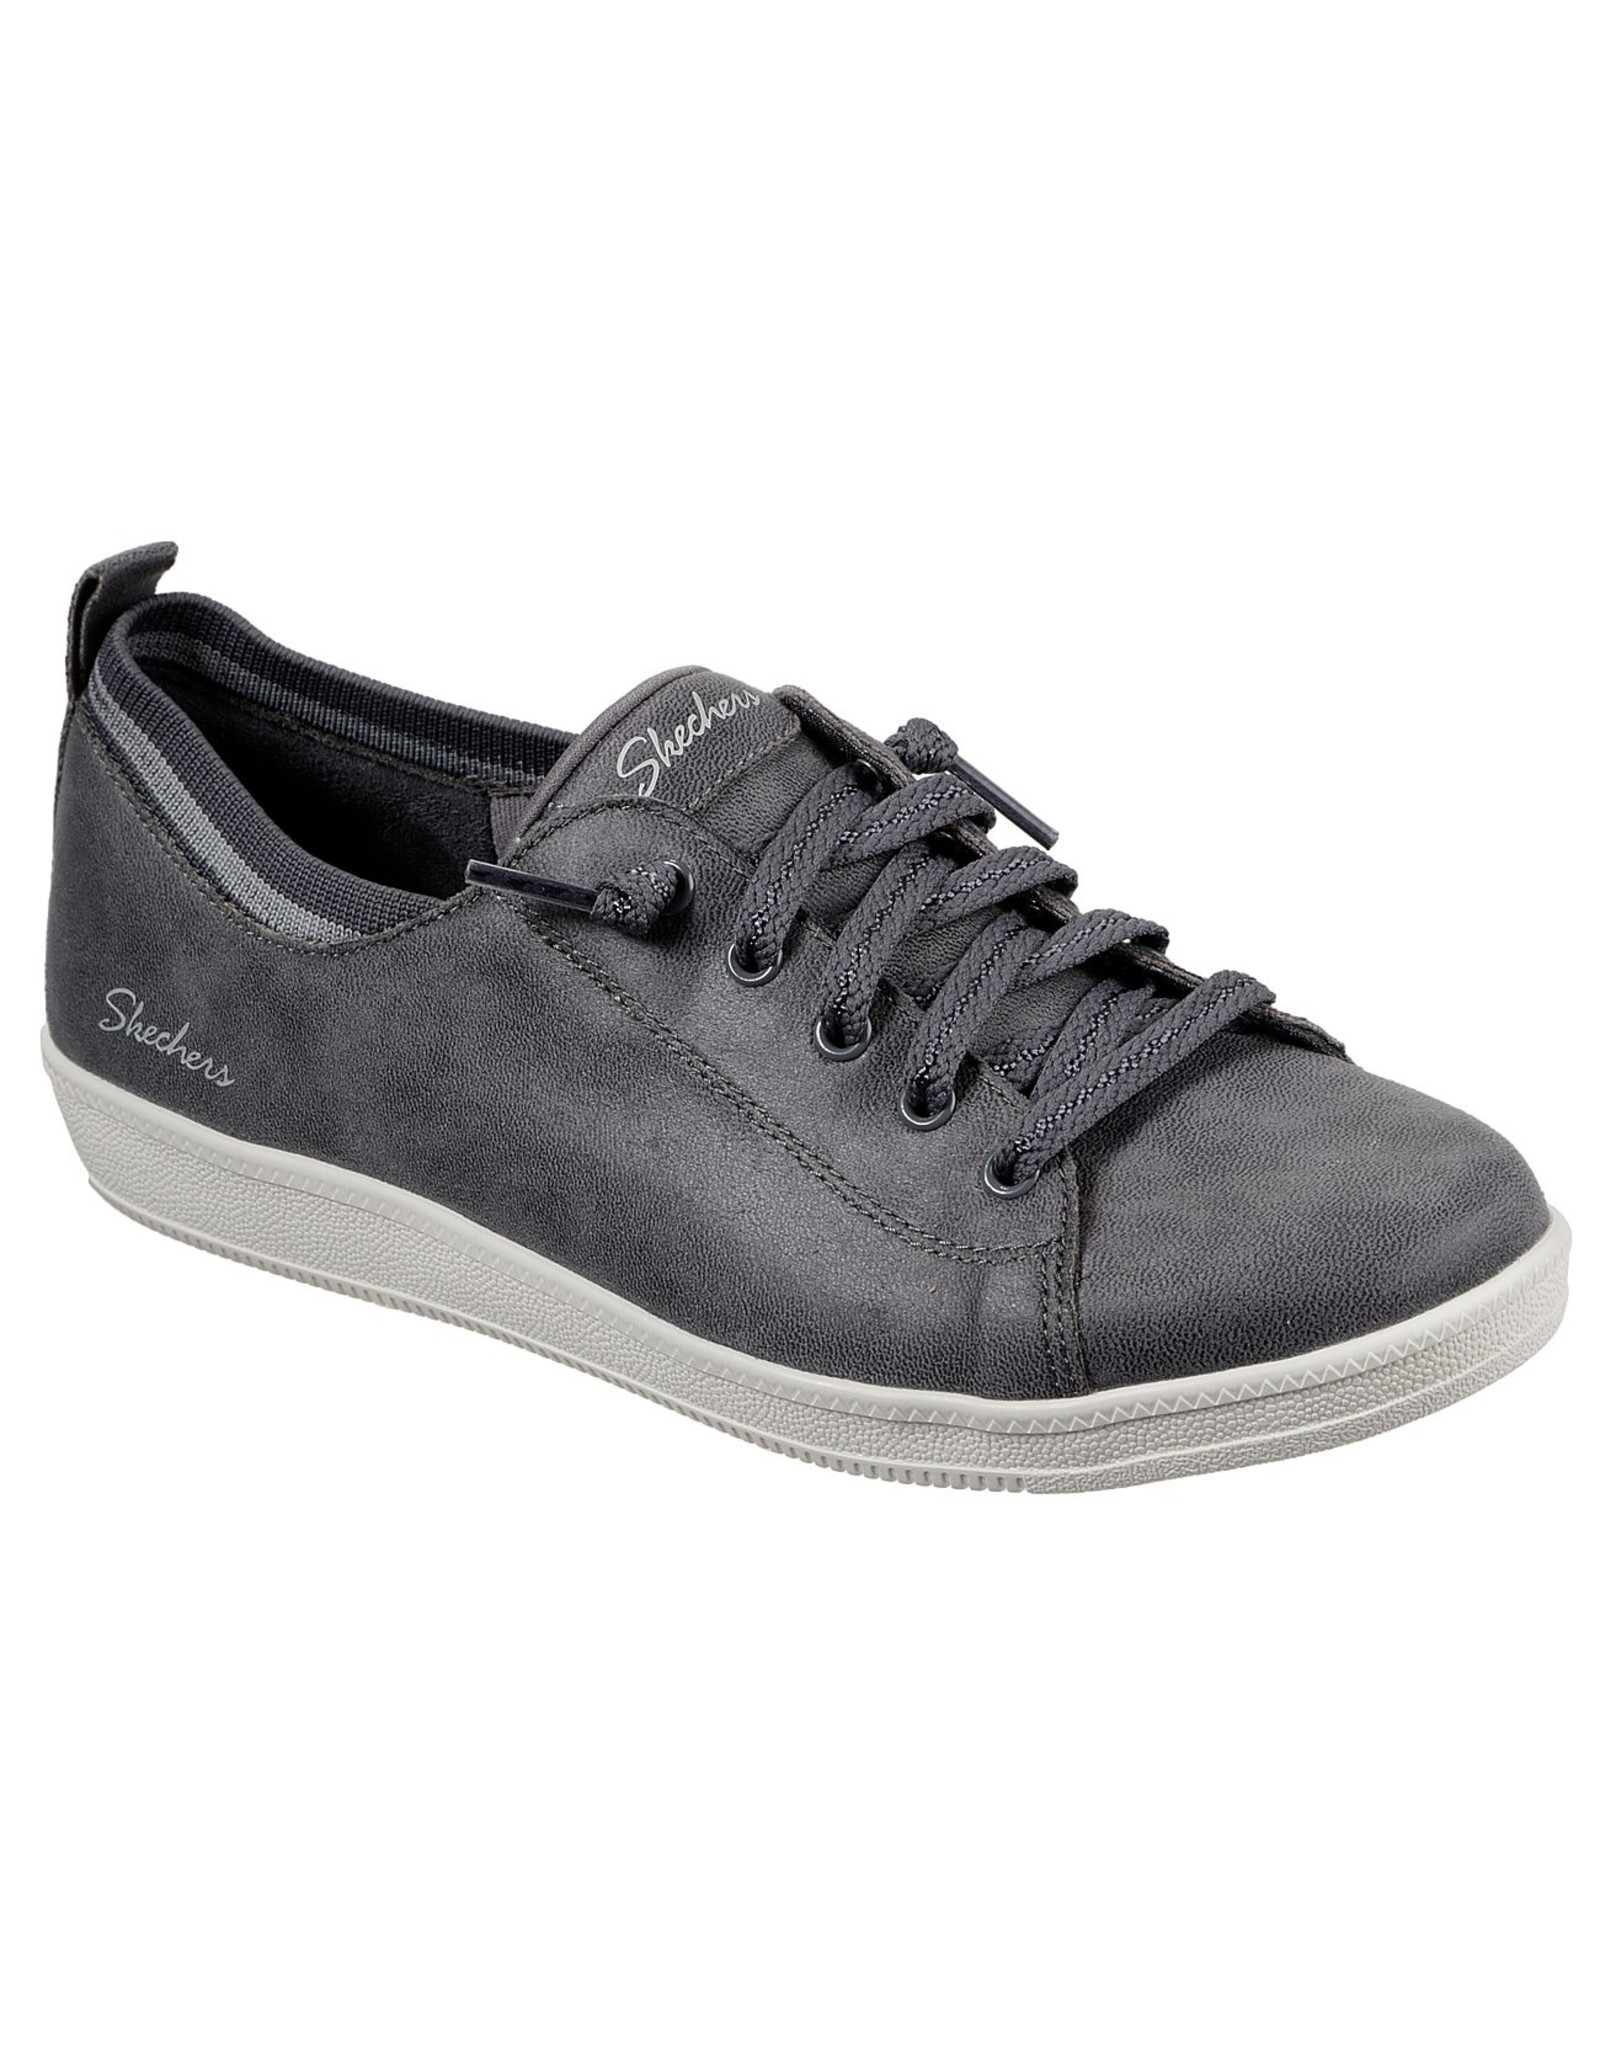 SKECHERS MADISON AVE CITY WAYS WOMEN'S SHOES, CHARCOAL